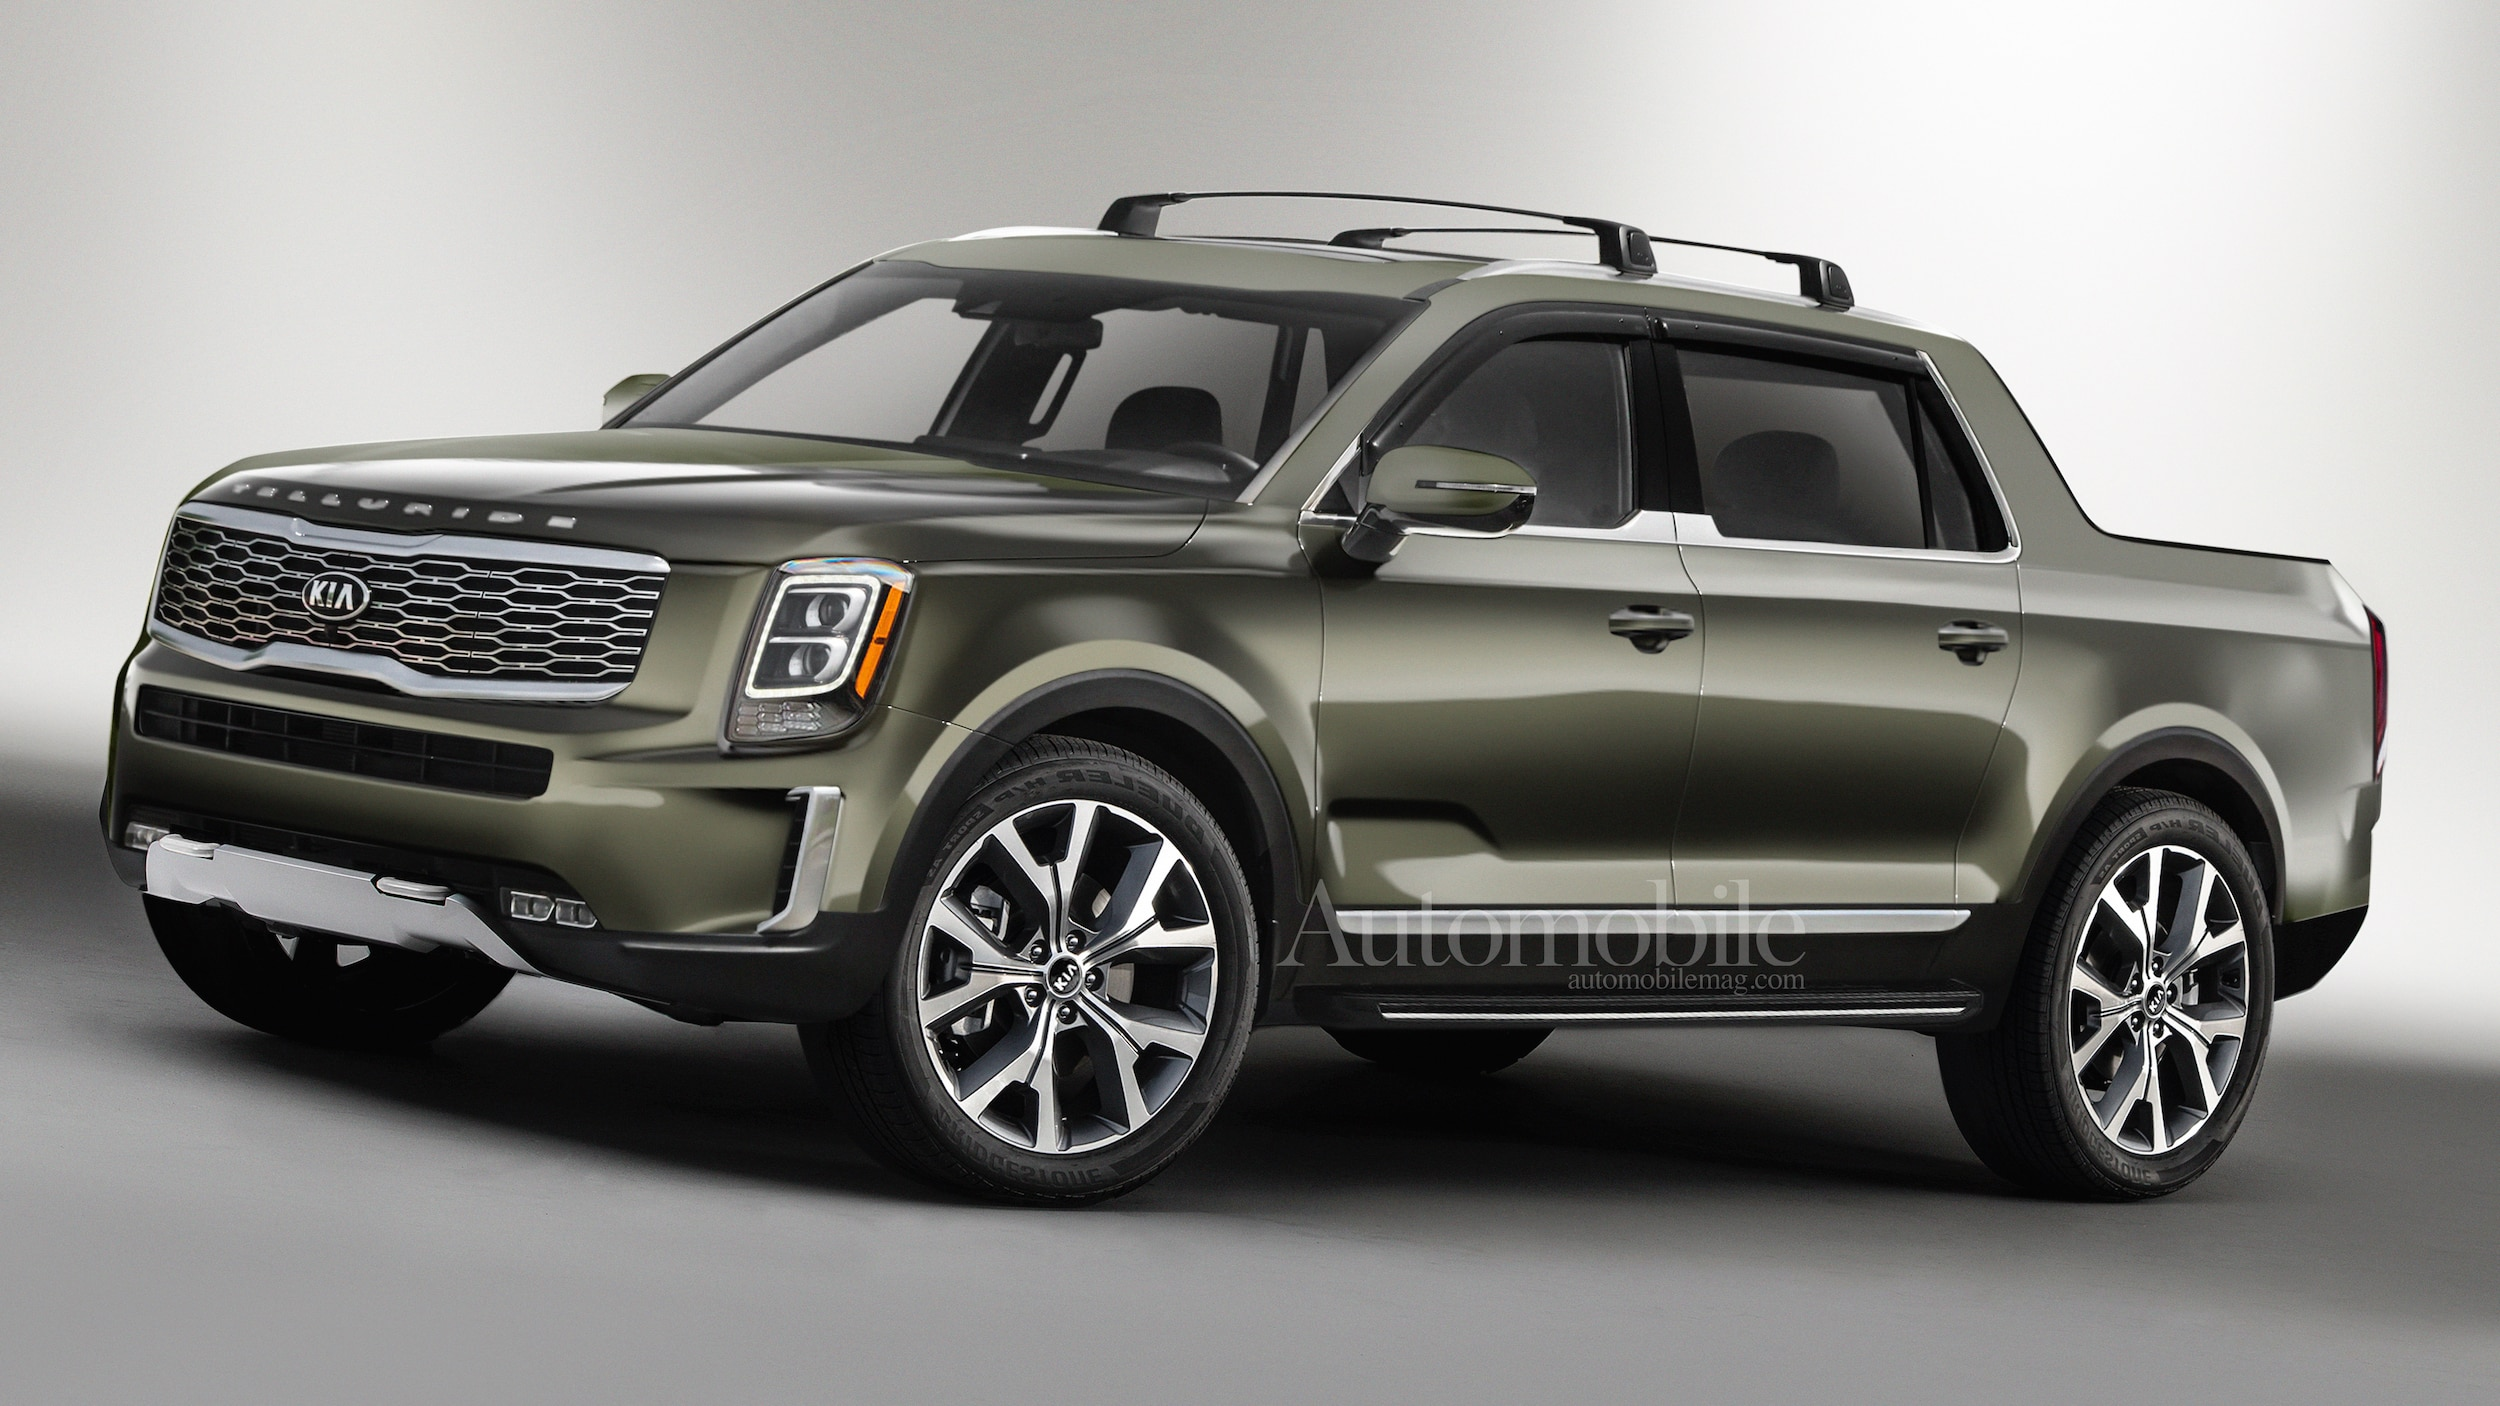 Jeep Grand Wagoneer 2018 >> Kia Telluride Pickup Truck: Renderings + Rumors - Automobile